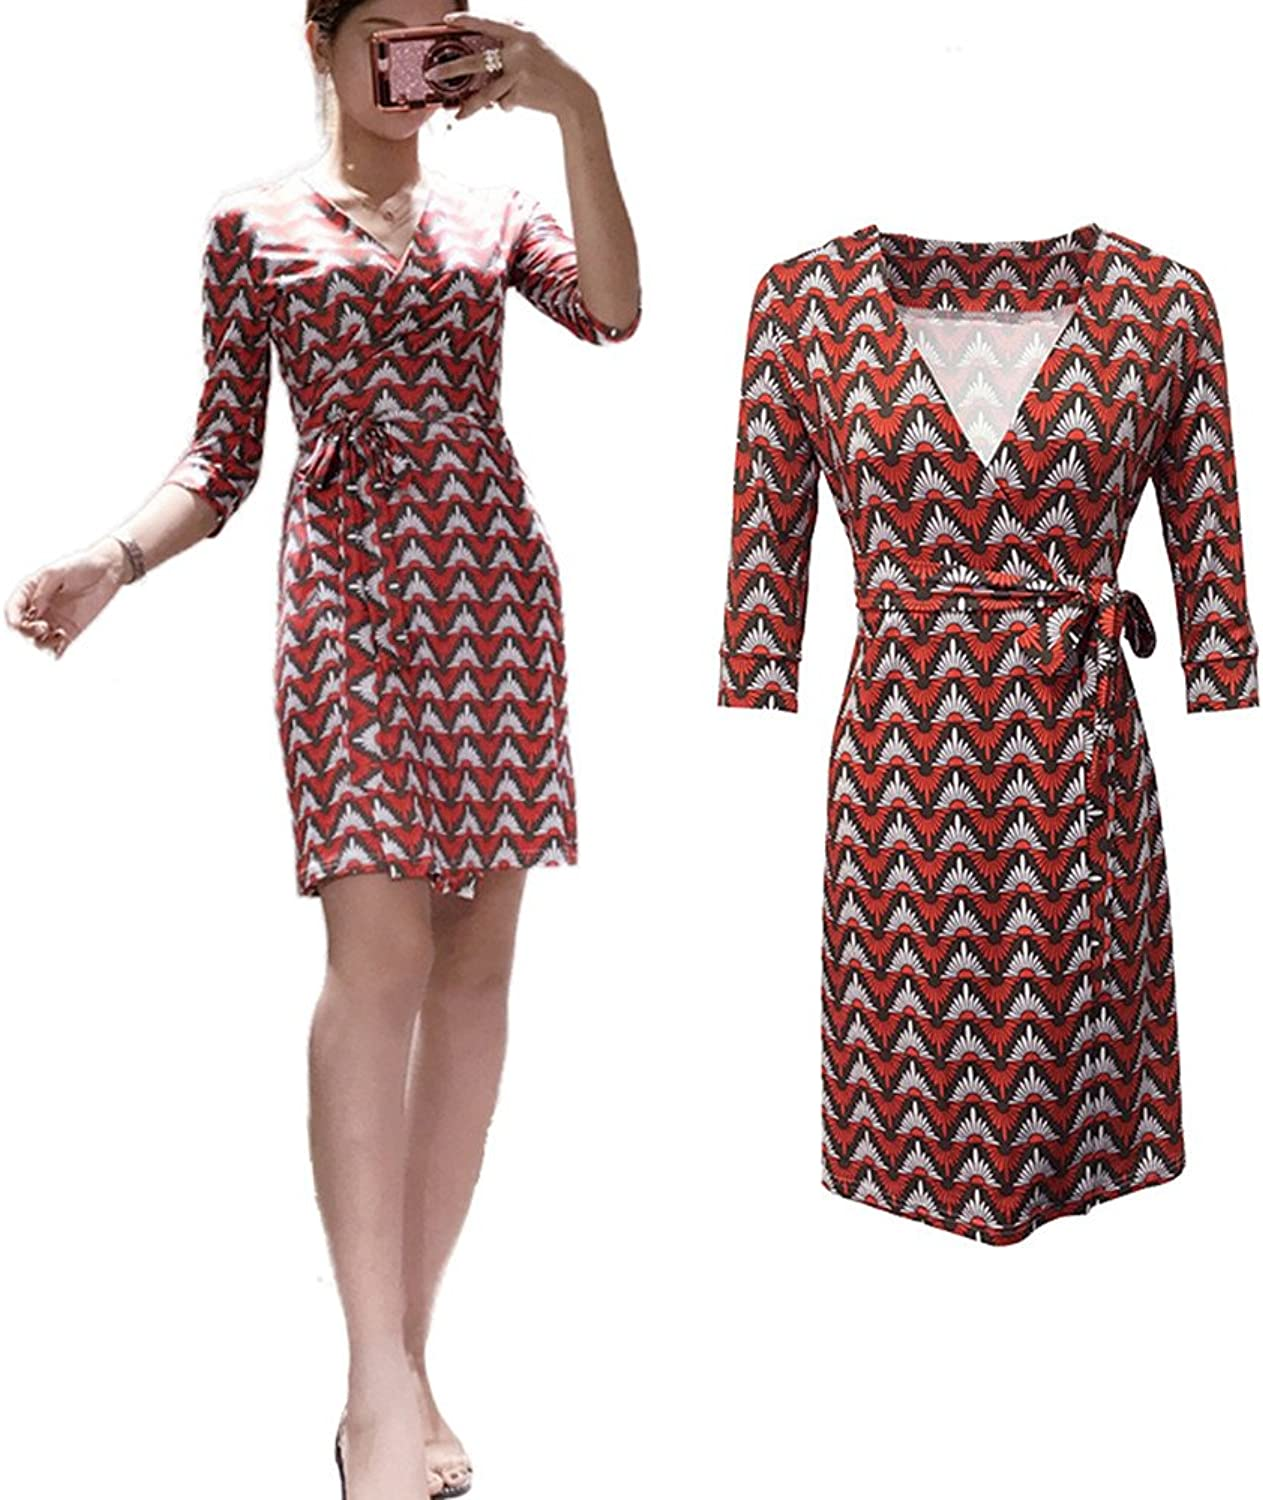 XC DVF Summer Women Vintage Floral Print Dress 3 4 Sleeve Midi Wrap Dress with Belt